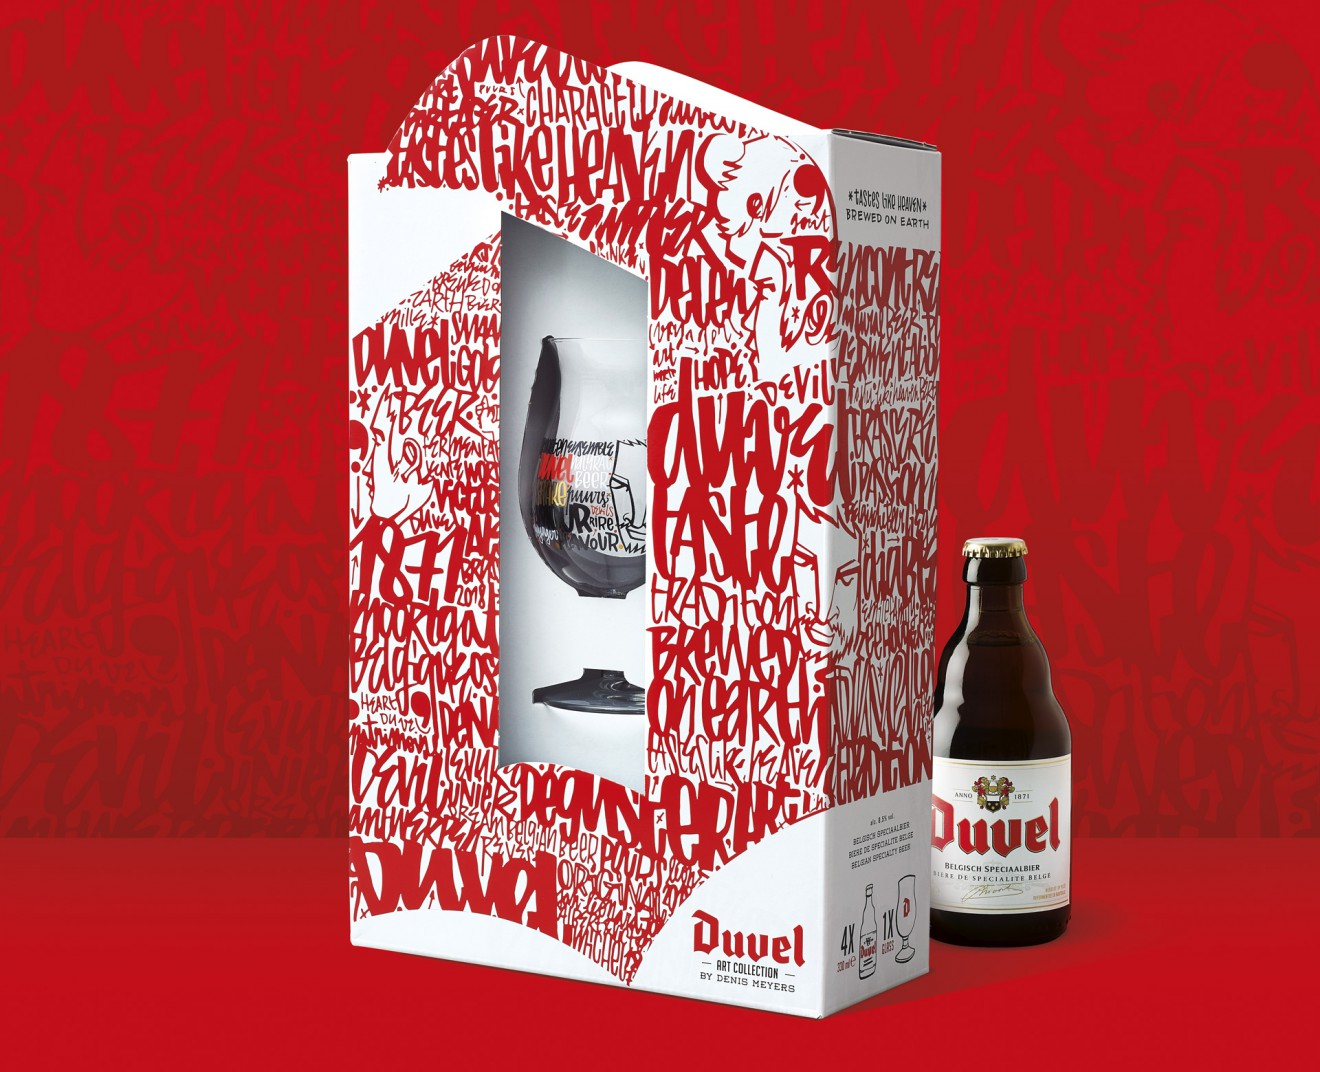 Quatre Mains package design - denis meyers, duvel, packaging, gift pack